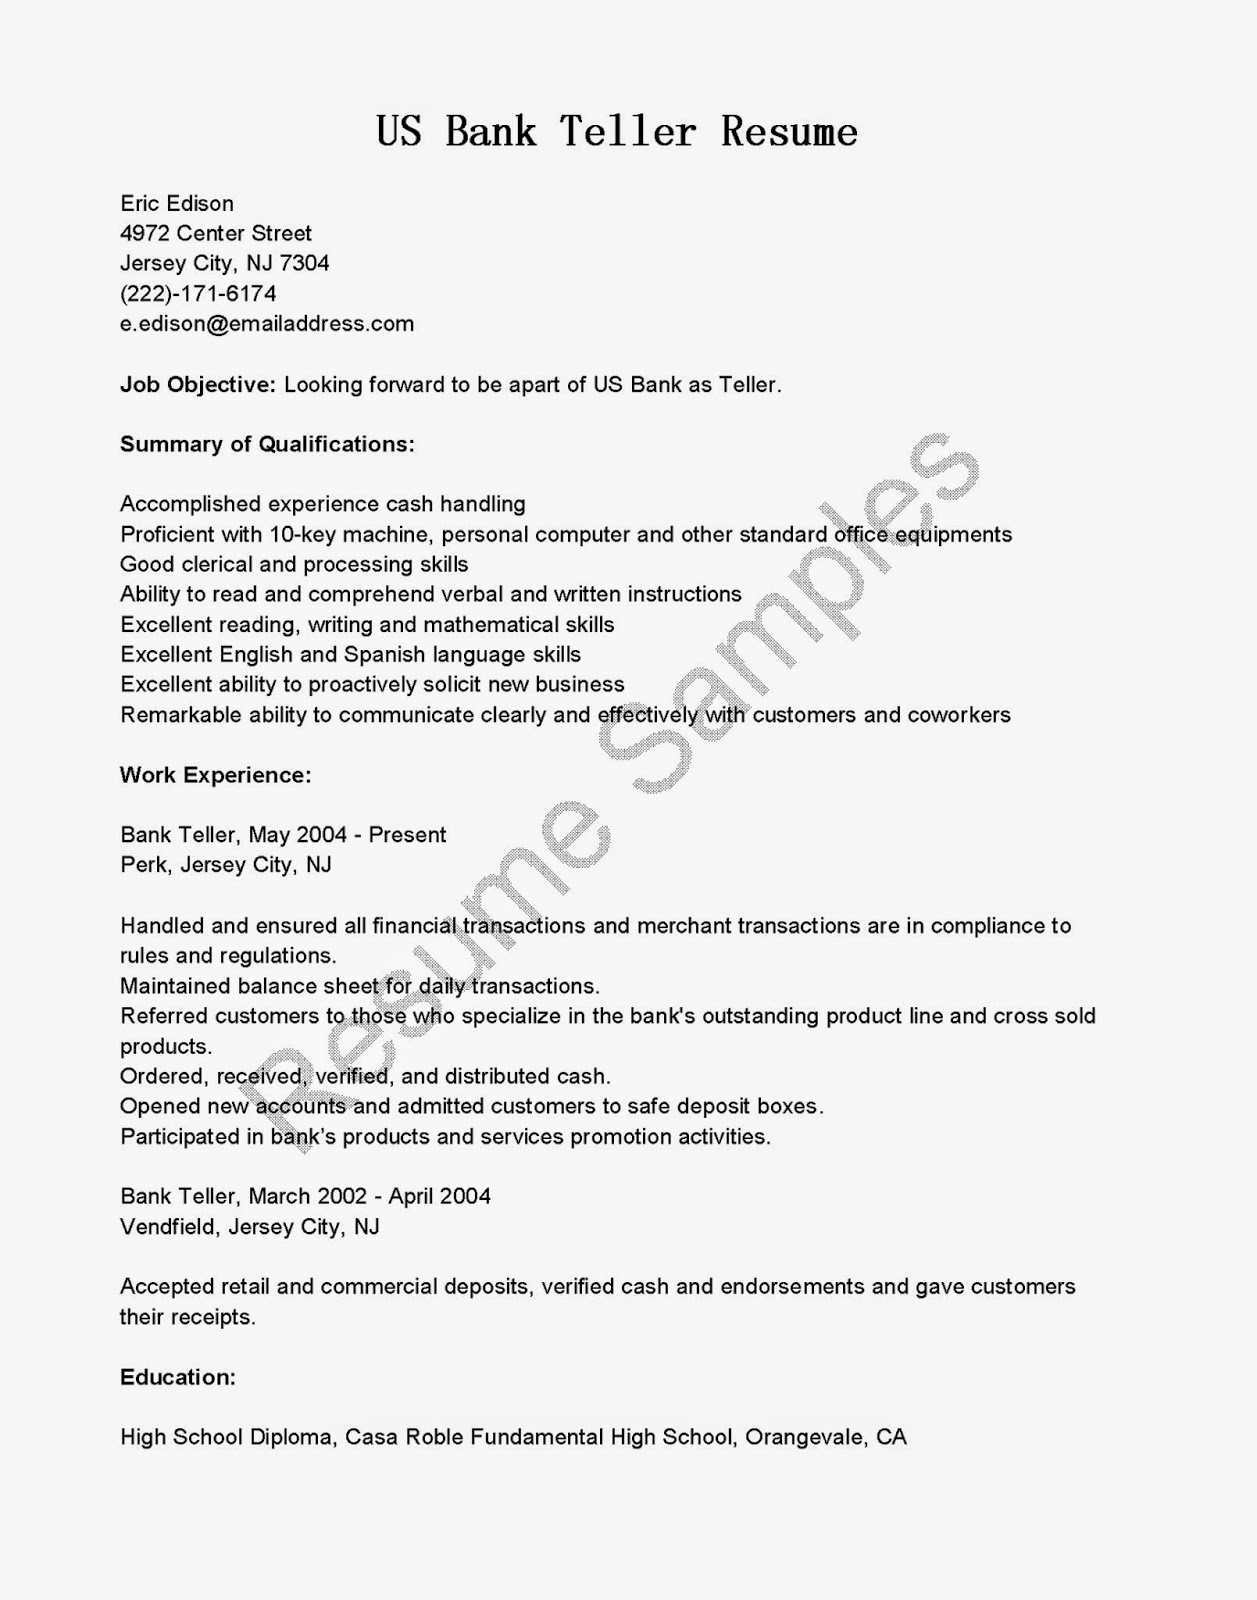 Resume Examples Sales Position Cdl Driver Resume Socialsci Cotruck Driver Resume  Job Description Truck Driver Resume  Sales Job Resume